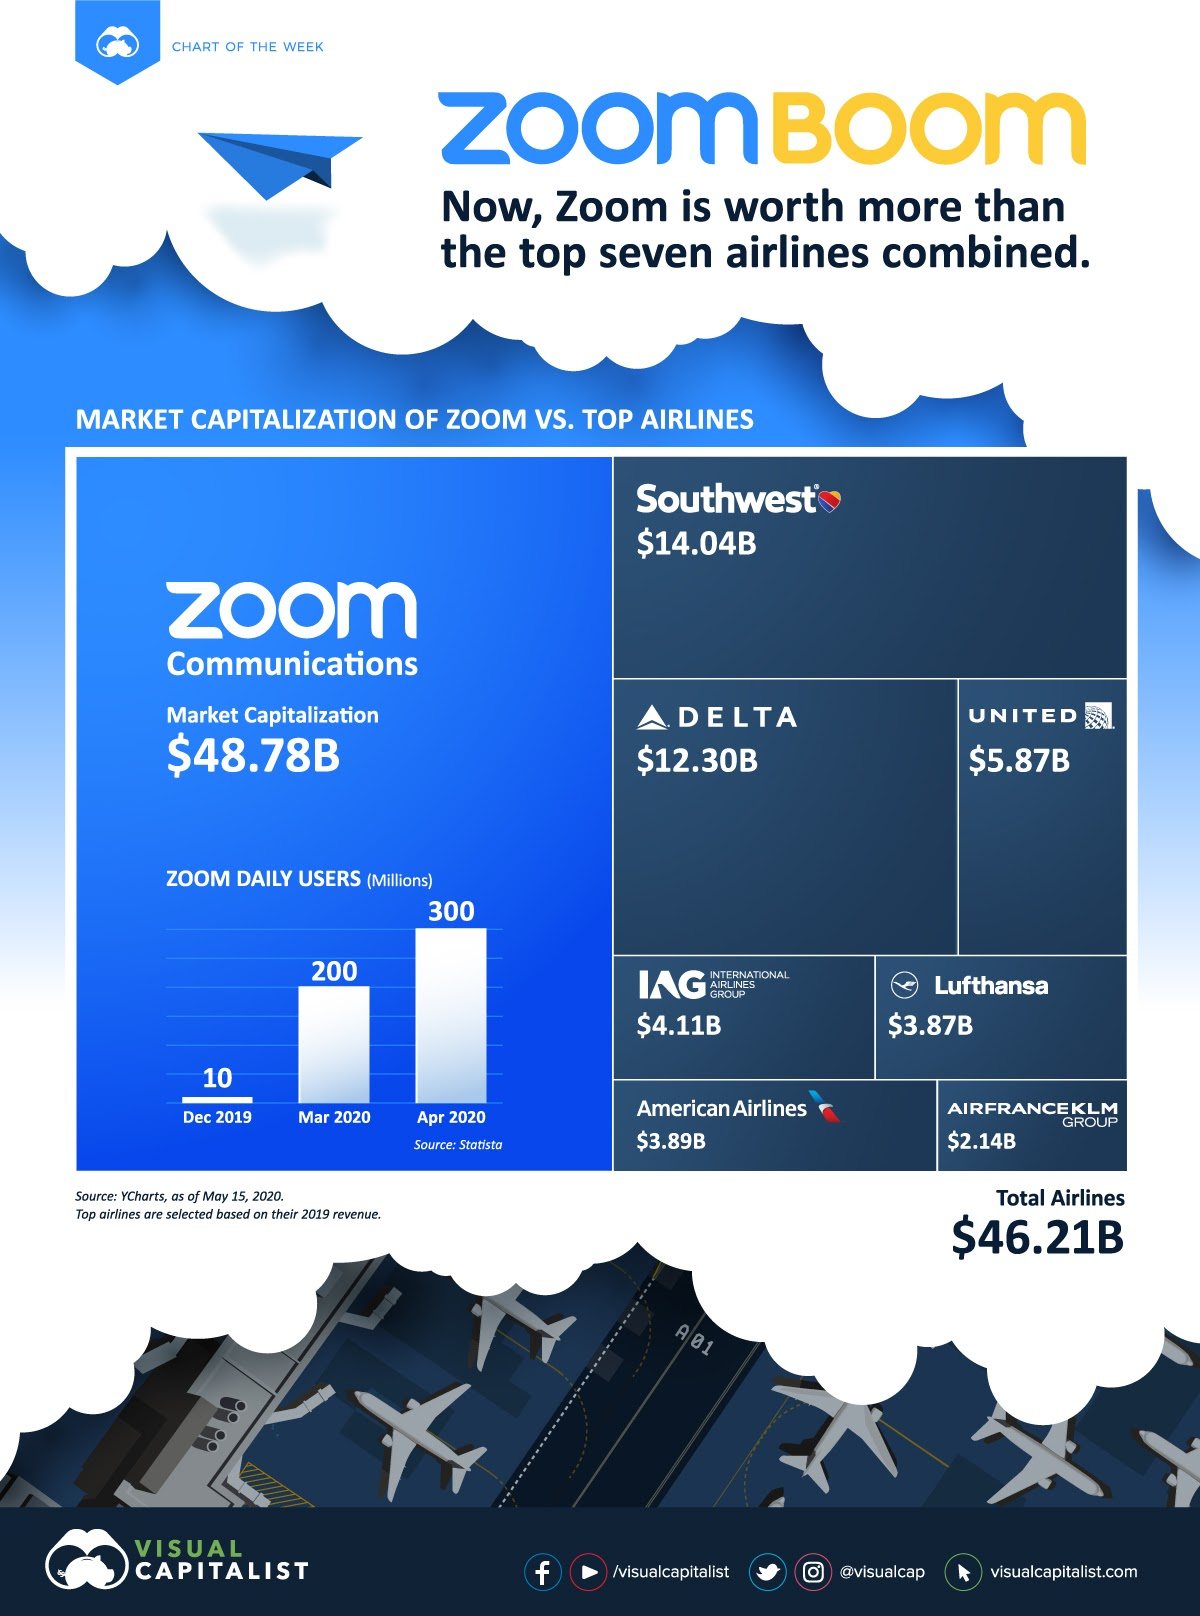 Zoom Boom: Now Zoom is Worth More Than The Top Seven Airlines Combined #infographic